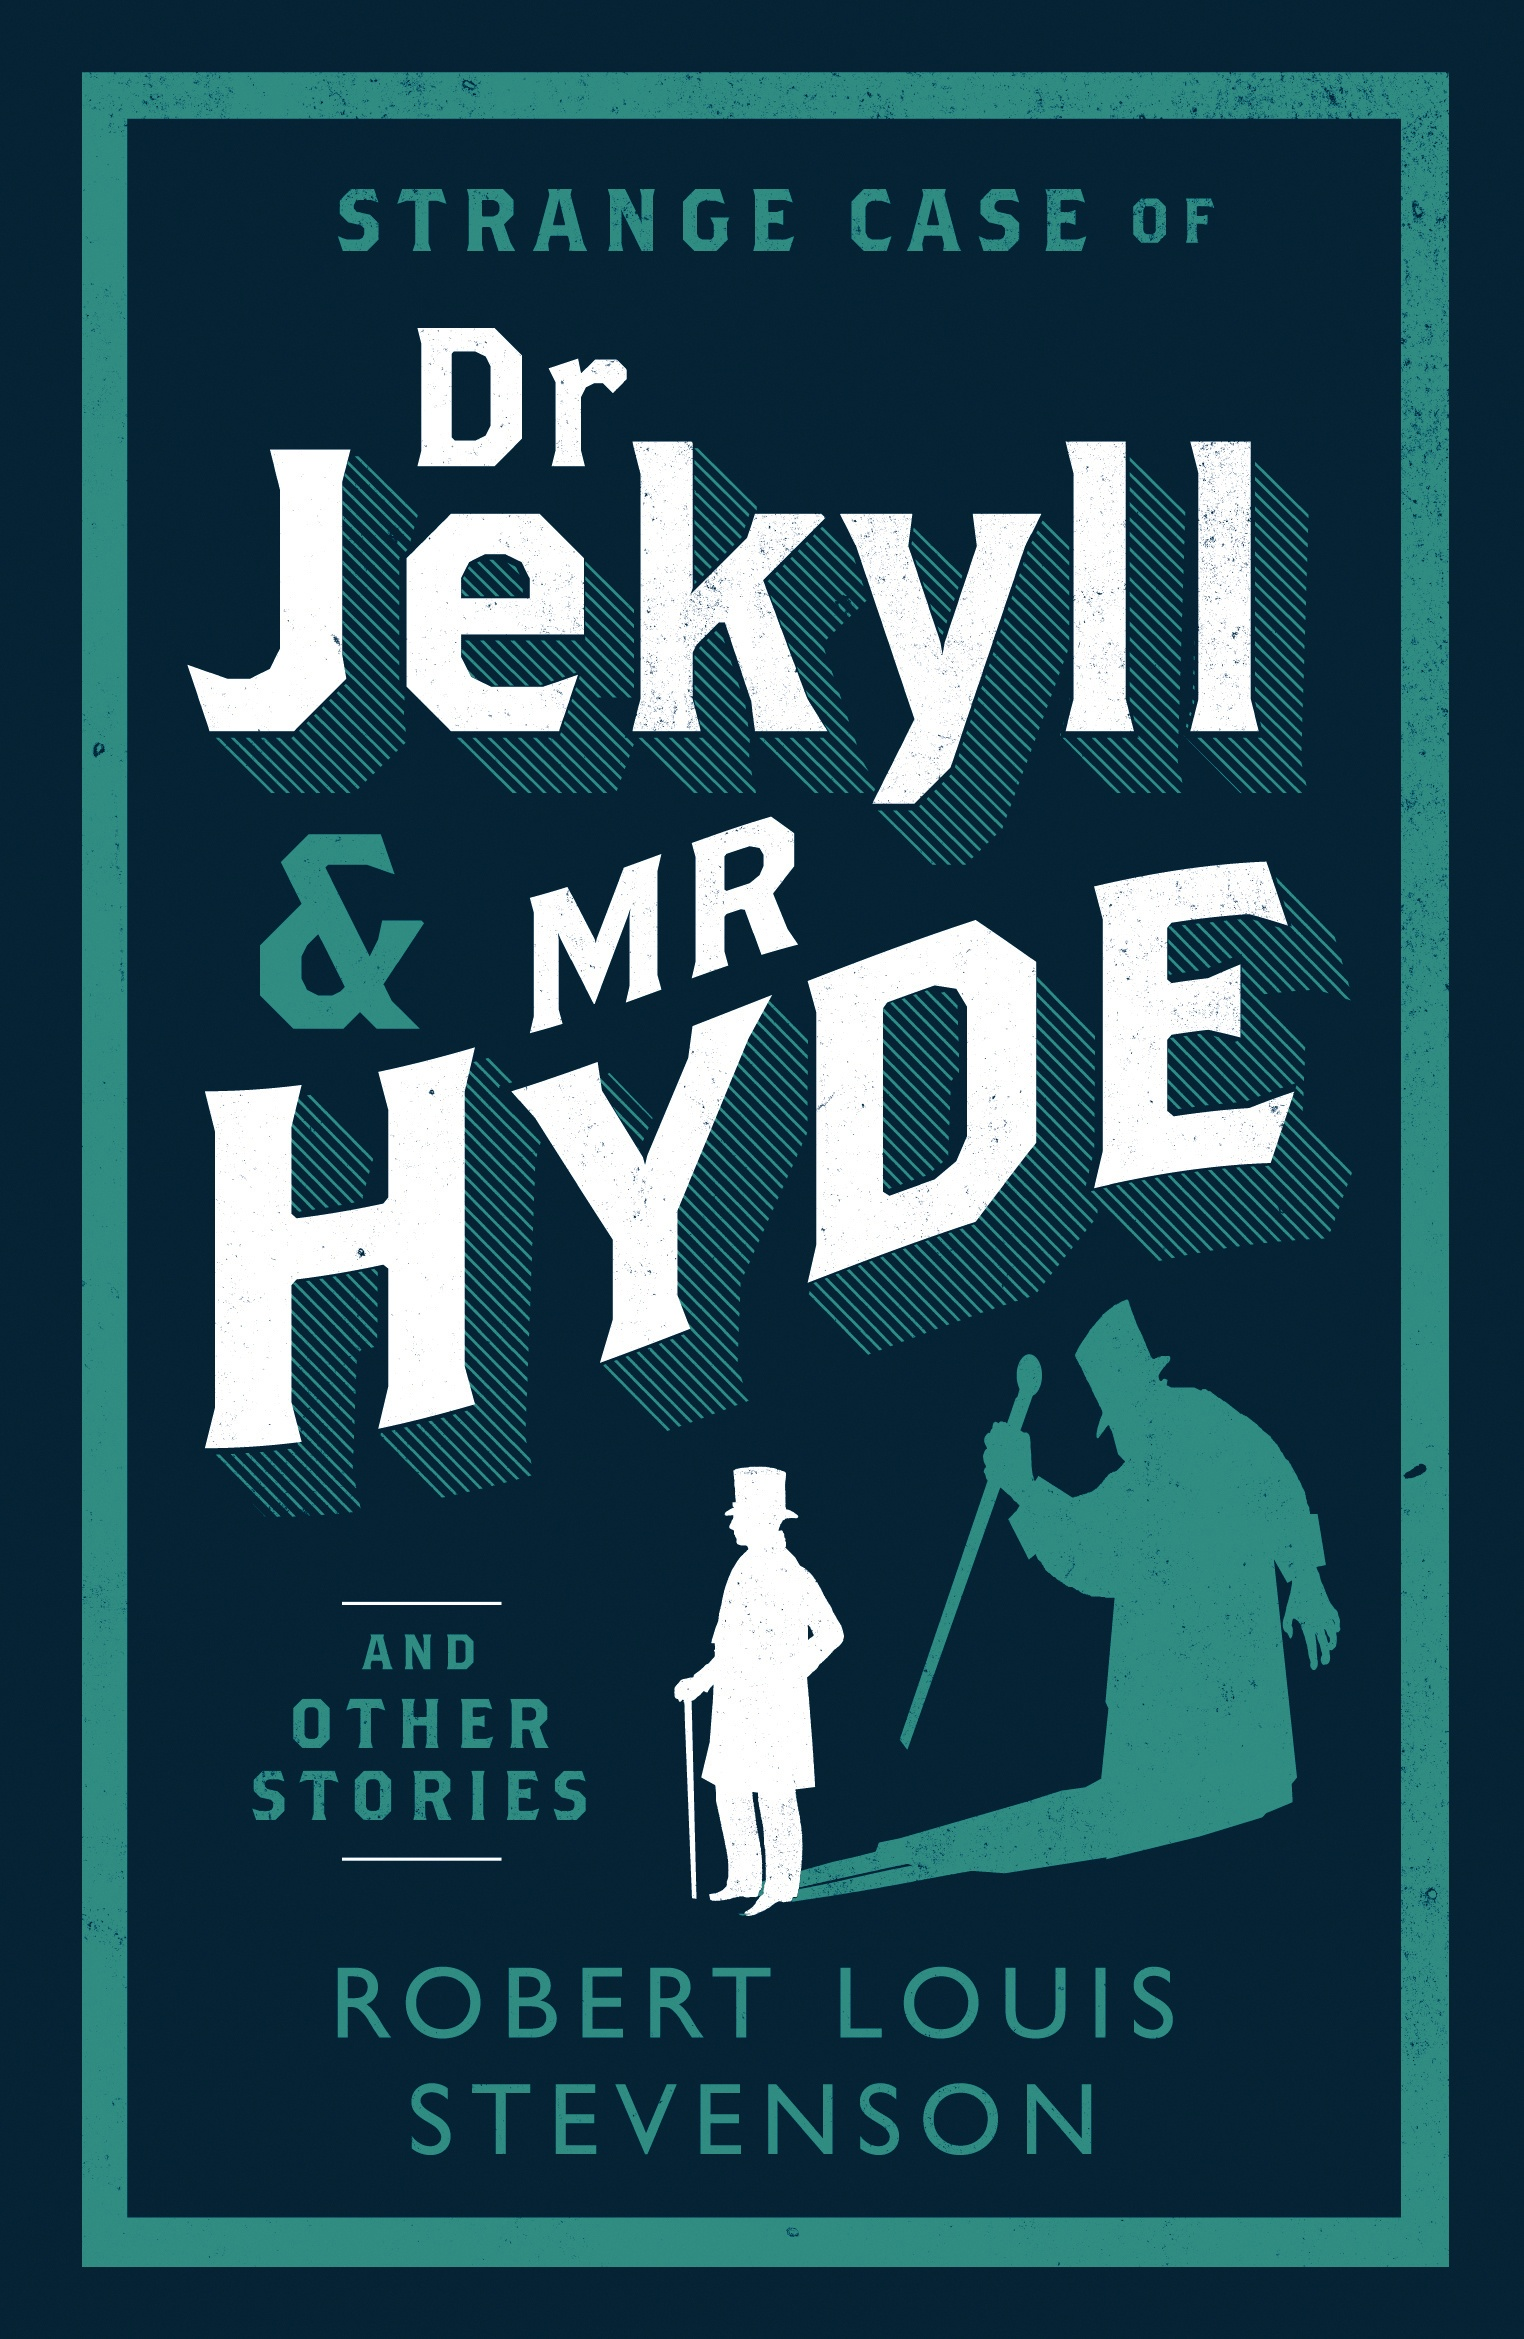 Image result for strange case of jekyll and hyde